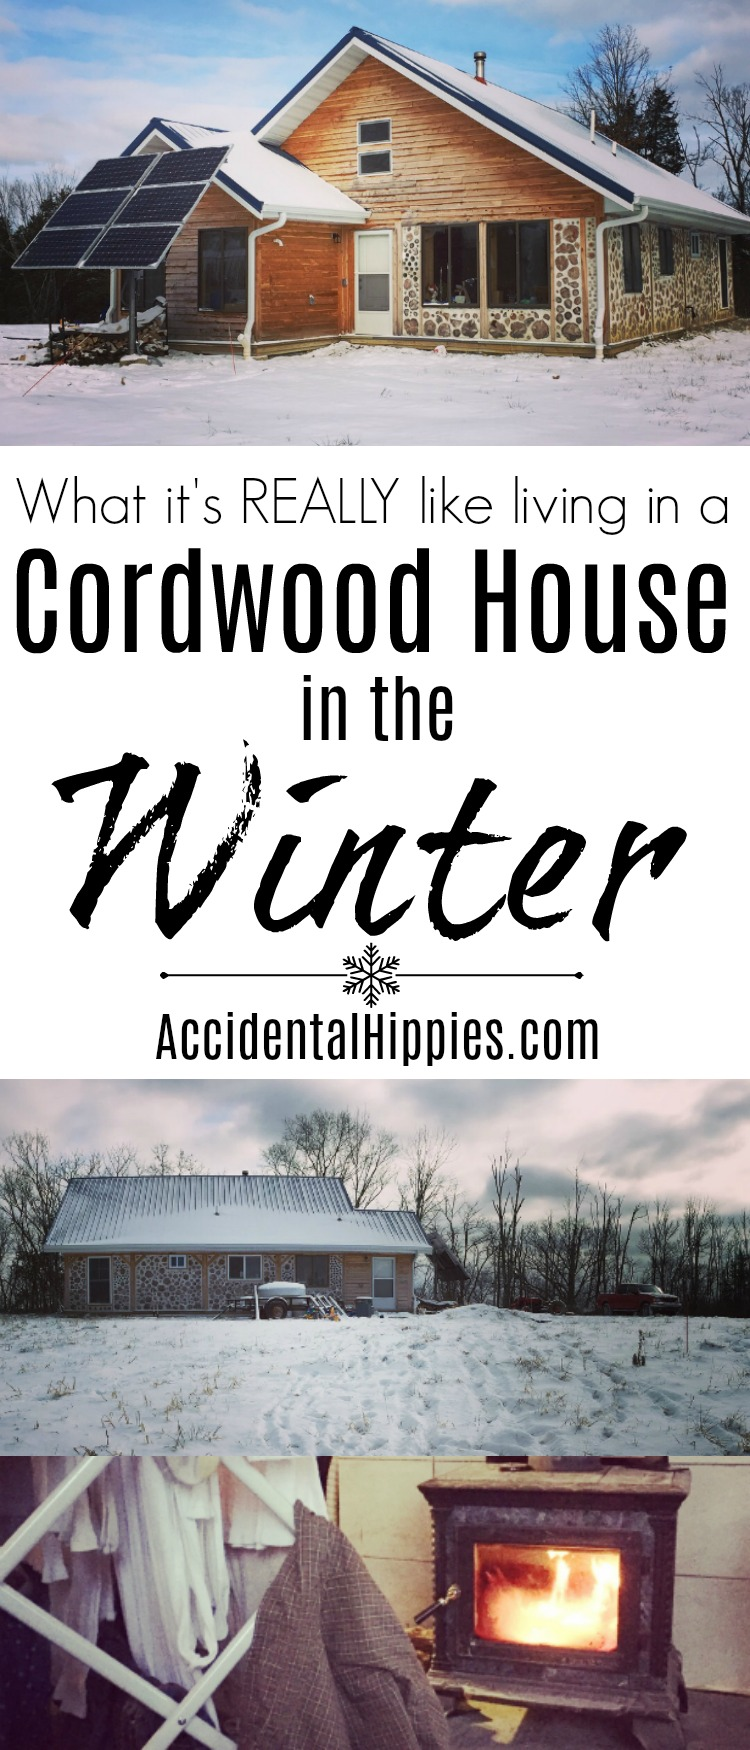 Cordwood is beautiful but how does it hold up in the winter? Is it drafty? Cold? Find out our experiences and more here.